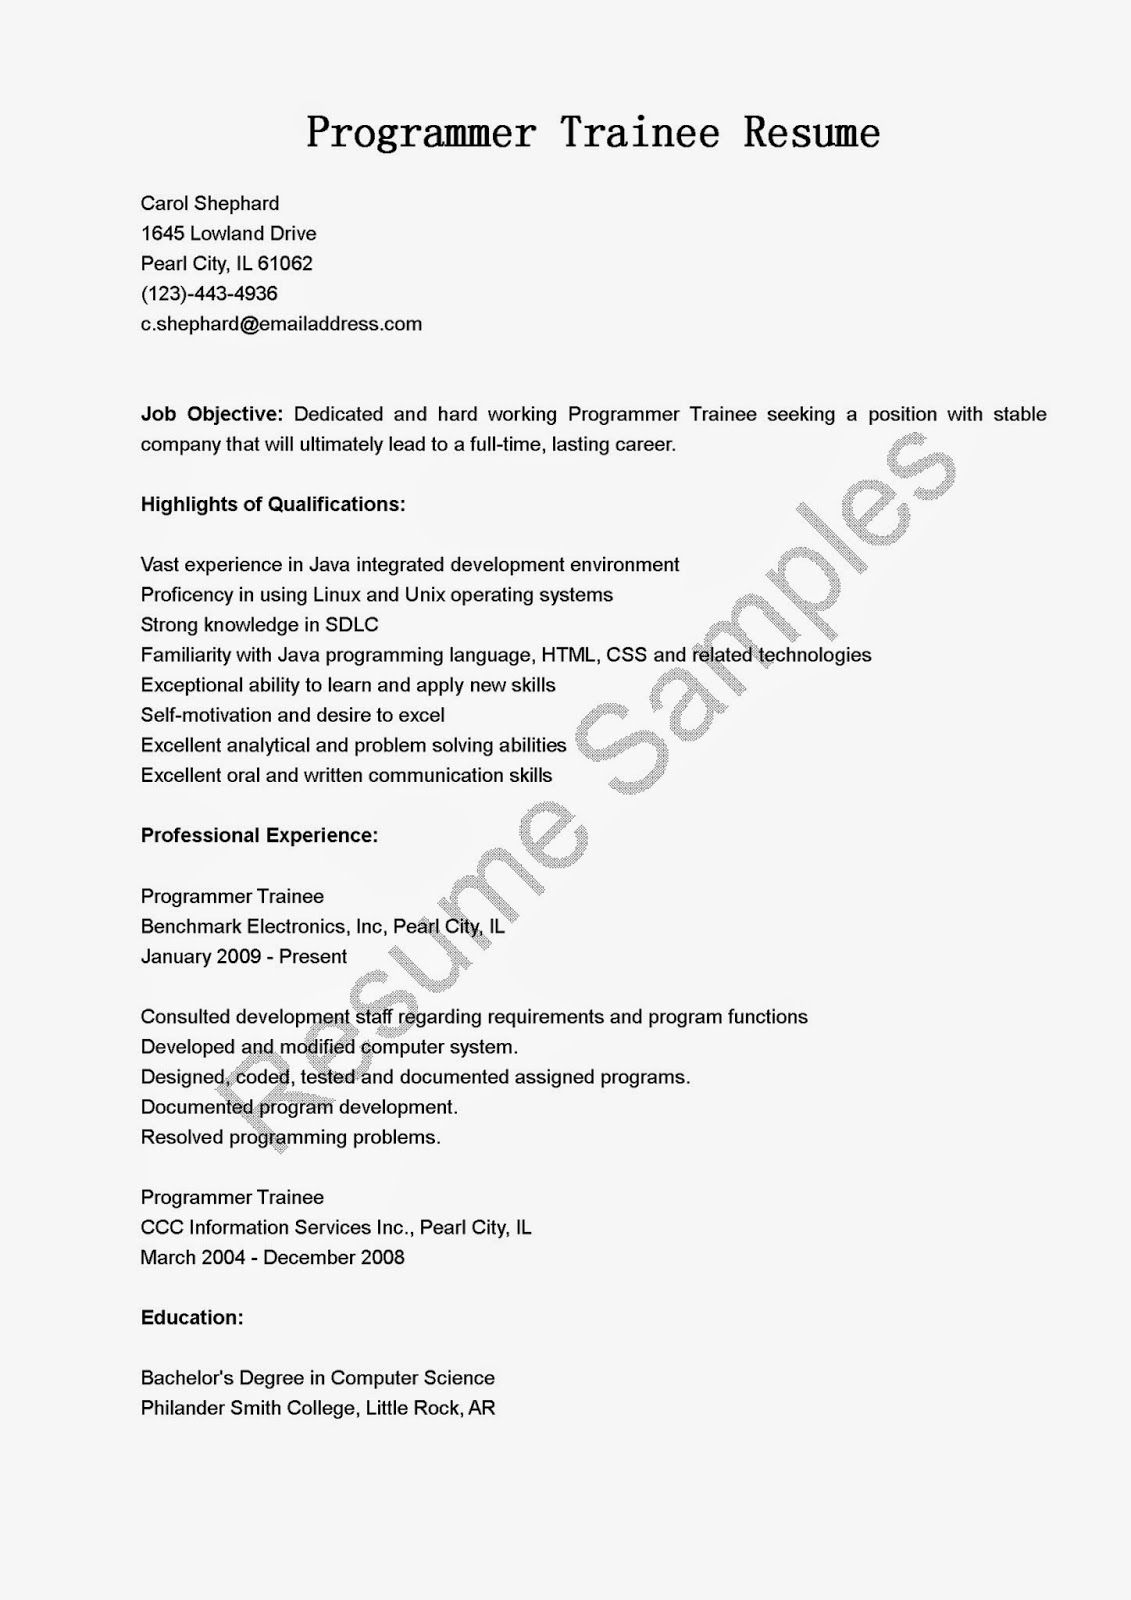 Use This FREE Sample Programmer Trainee Resume With Objective, Skills U0026  Responsibilities To Write Your Own Resume U0026 Instantly Draw The Recruiteru0027s  Interest.  Free Samples Of Resumes